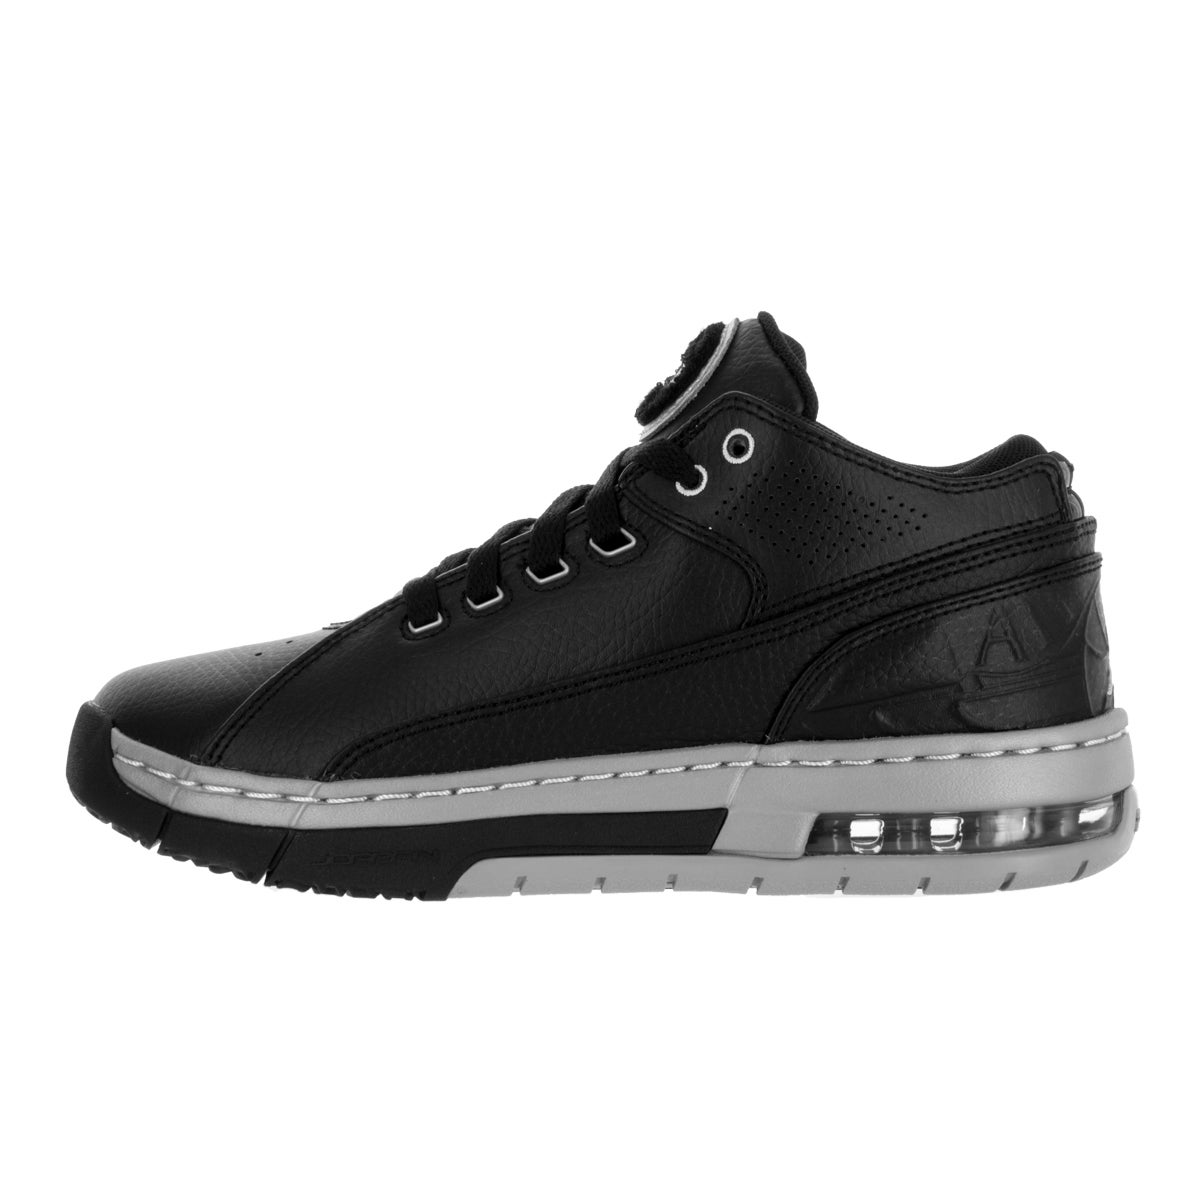 089c0748acf92e Shop Nike Jordan Kids  Jordan Ol School Low Black and Silver Synthetic  Leather Basketball Shoes - Free Shipping Today - Overstock - 13394426